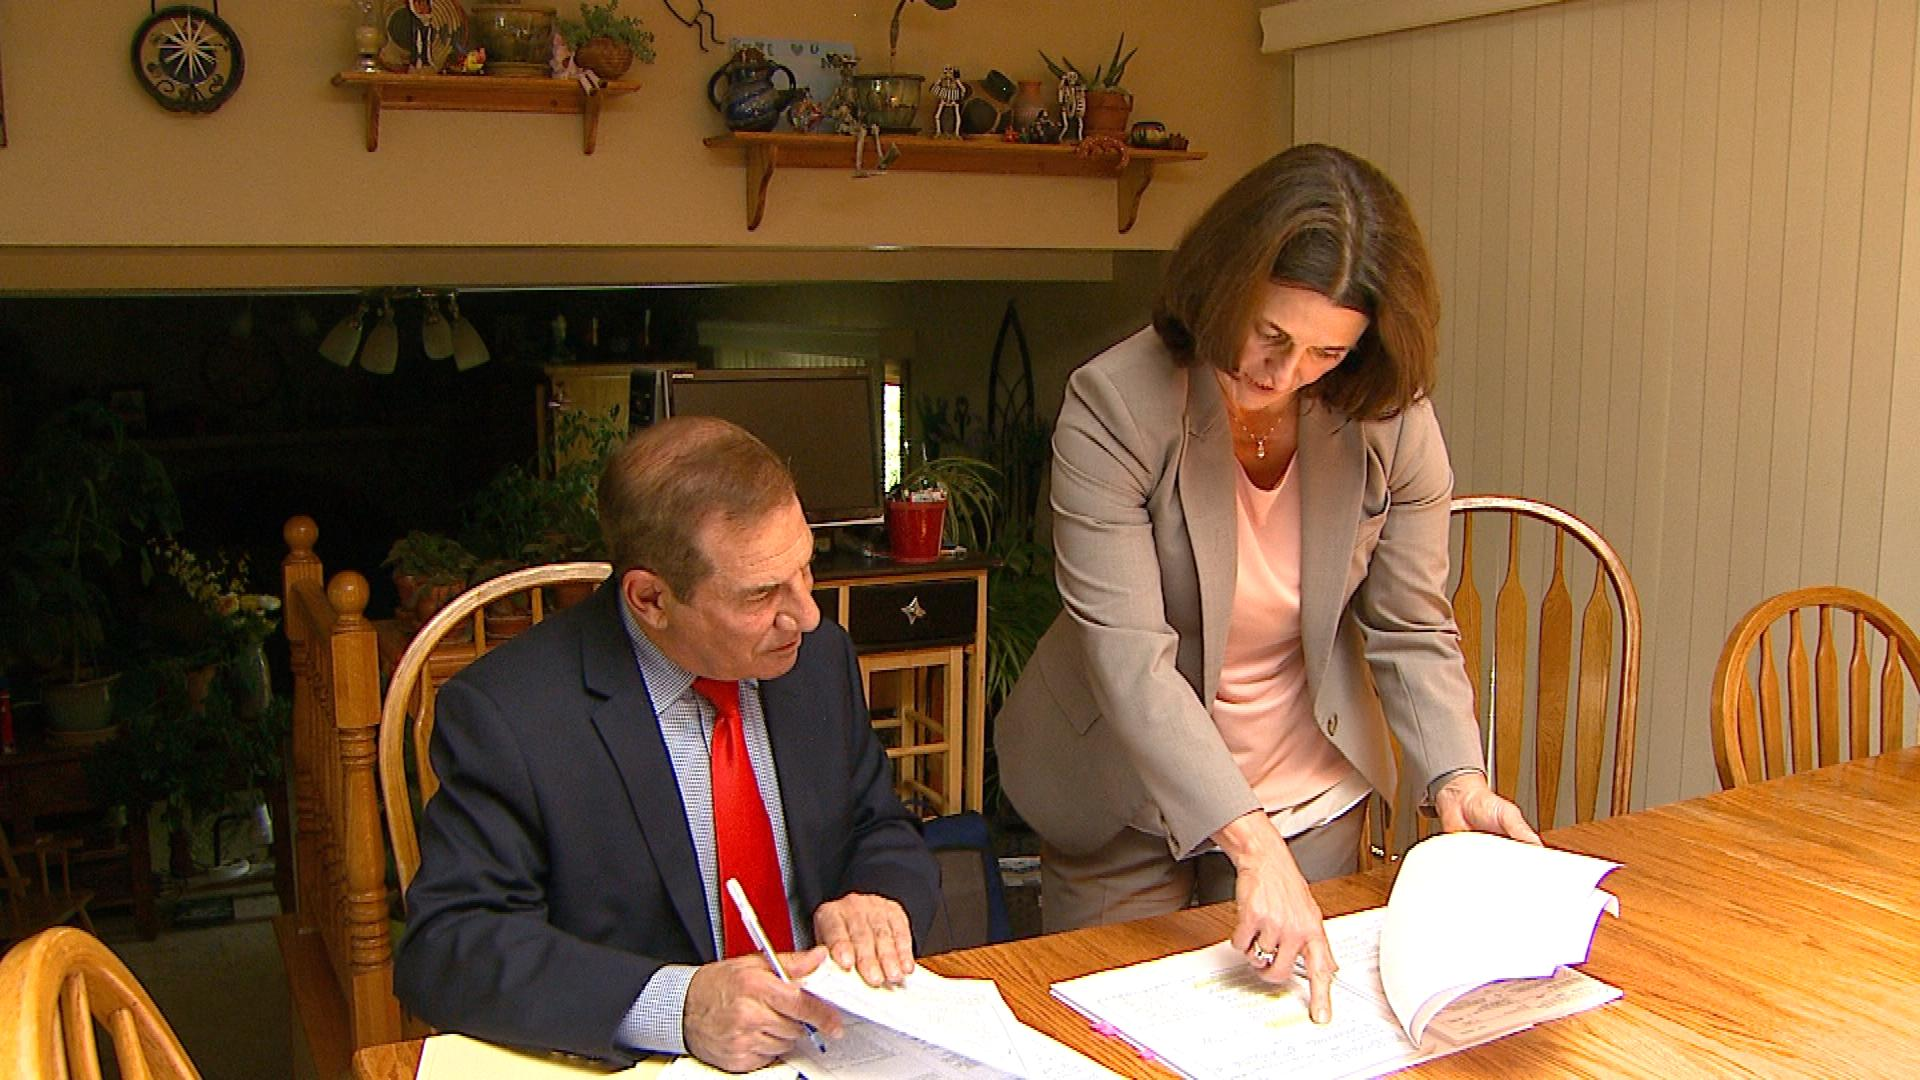 CBS4's Rick Sallinger with Scott Patzer's attorney Hollynd Hoskins (credit: CBS)